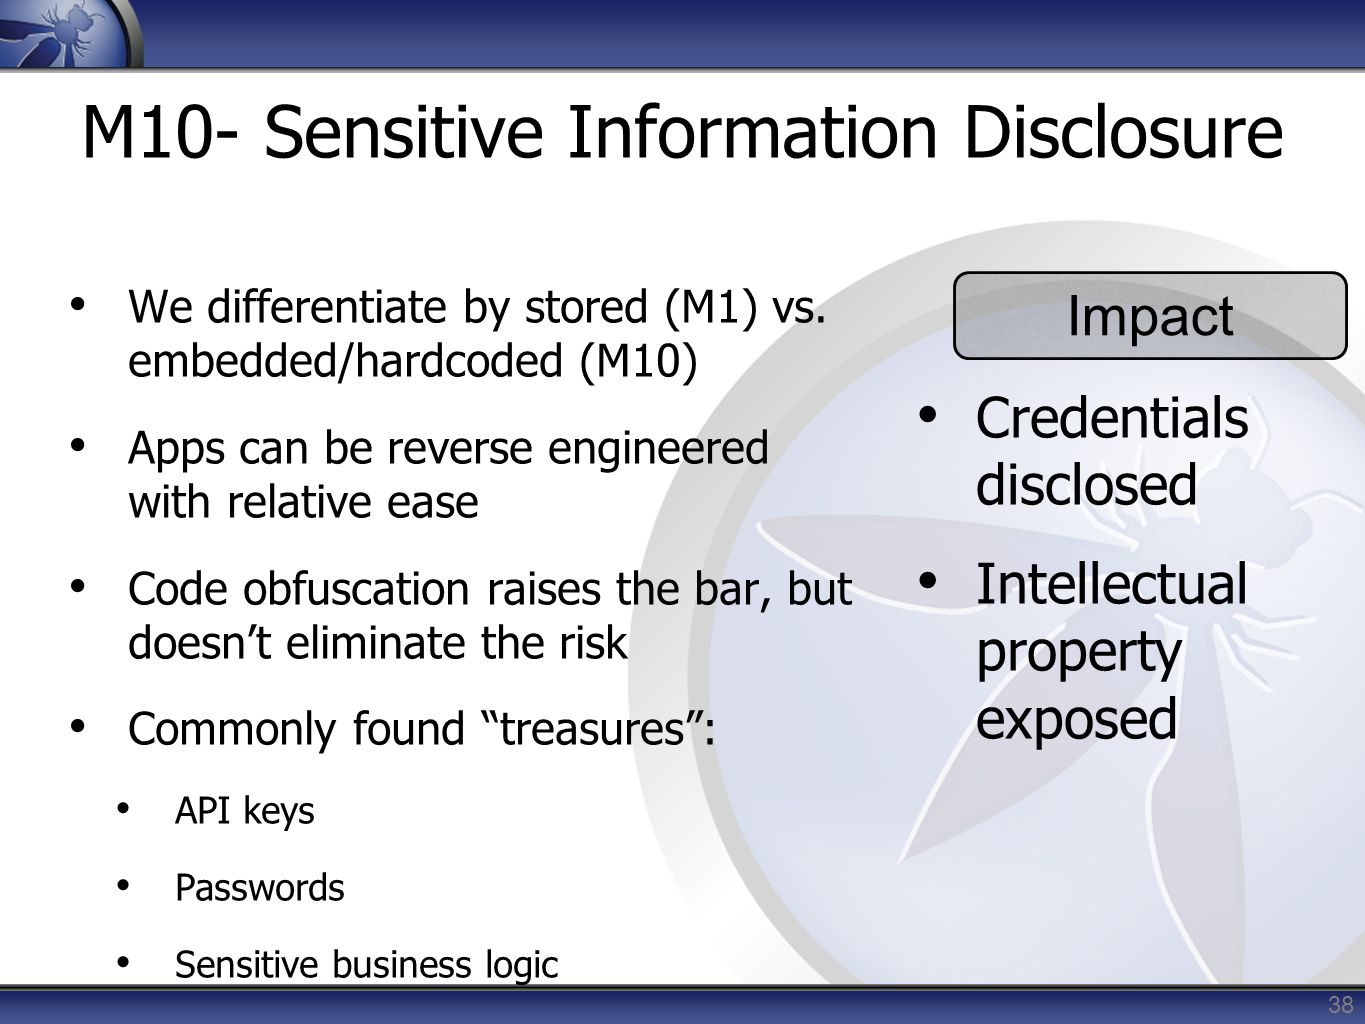 38 M10- Sensitive Information Disclosure We differentiate by stored (M1) vs. embedded/hardcoded (M10) Apps can be reverse engineered with relative eas